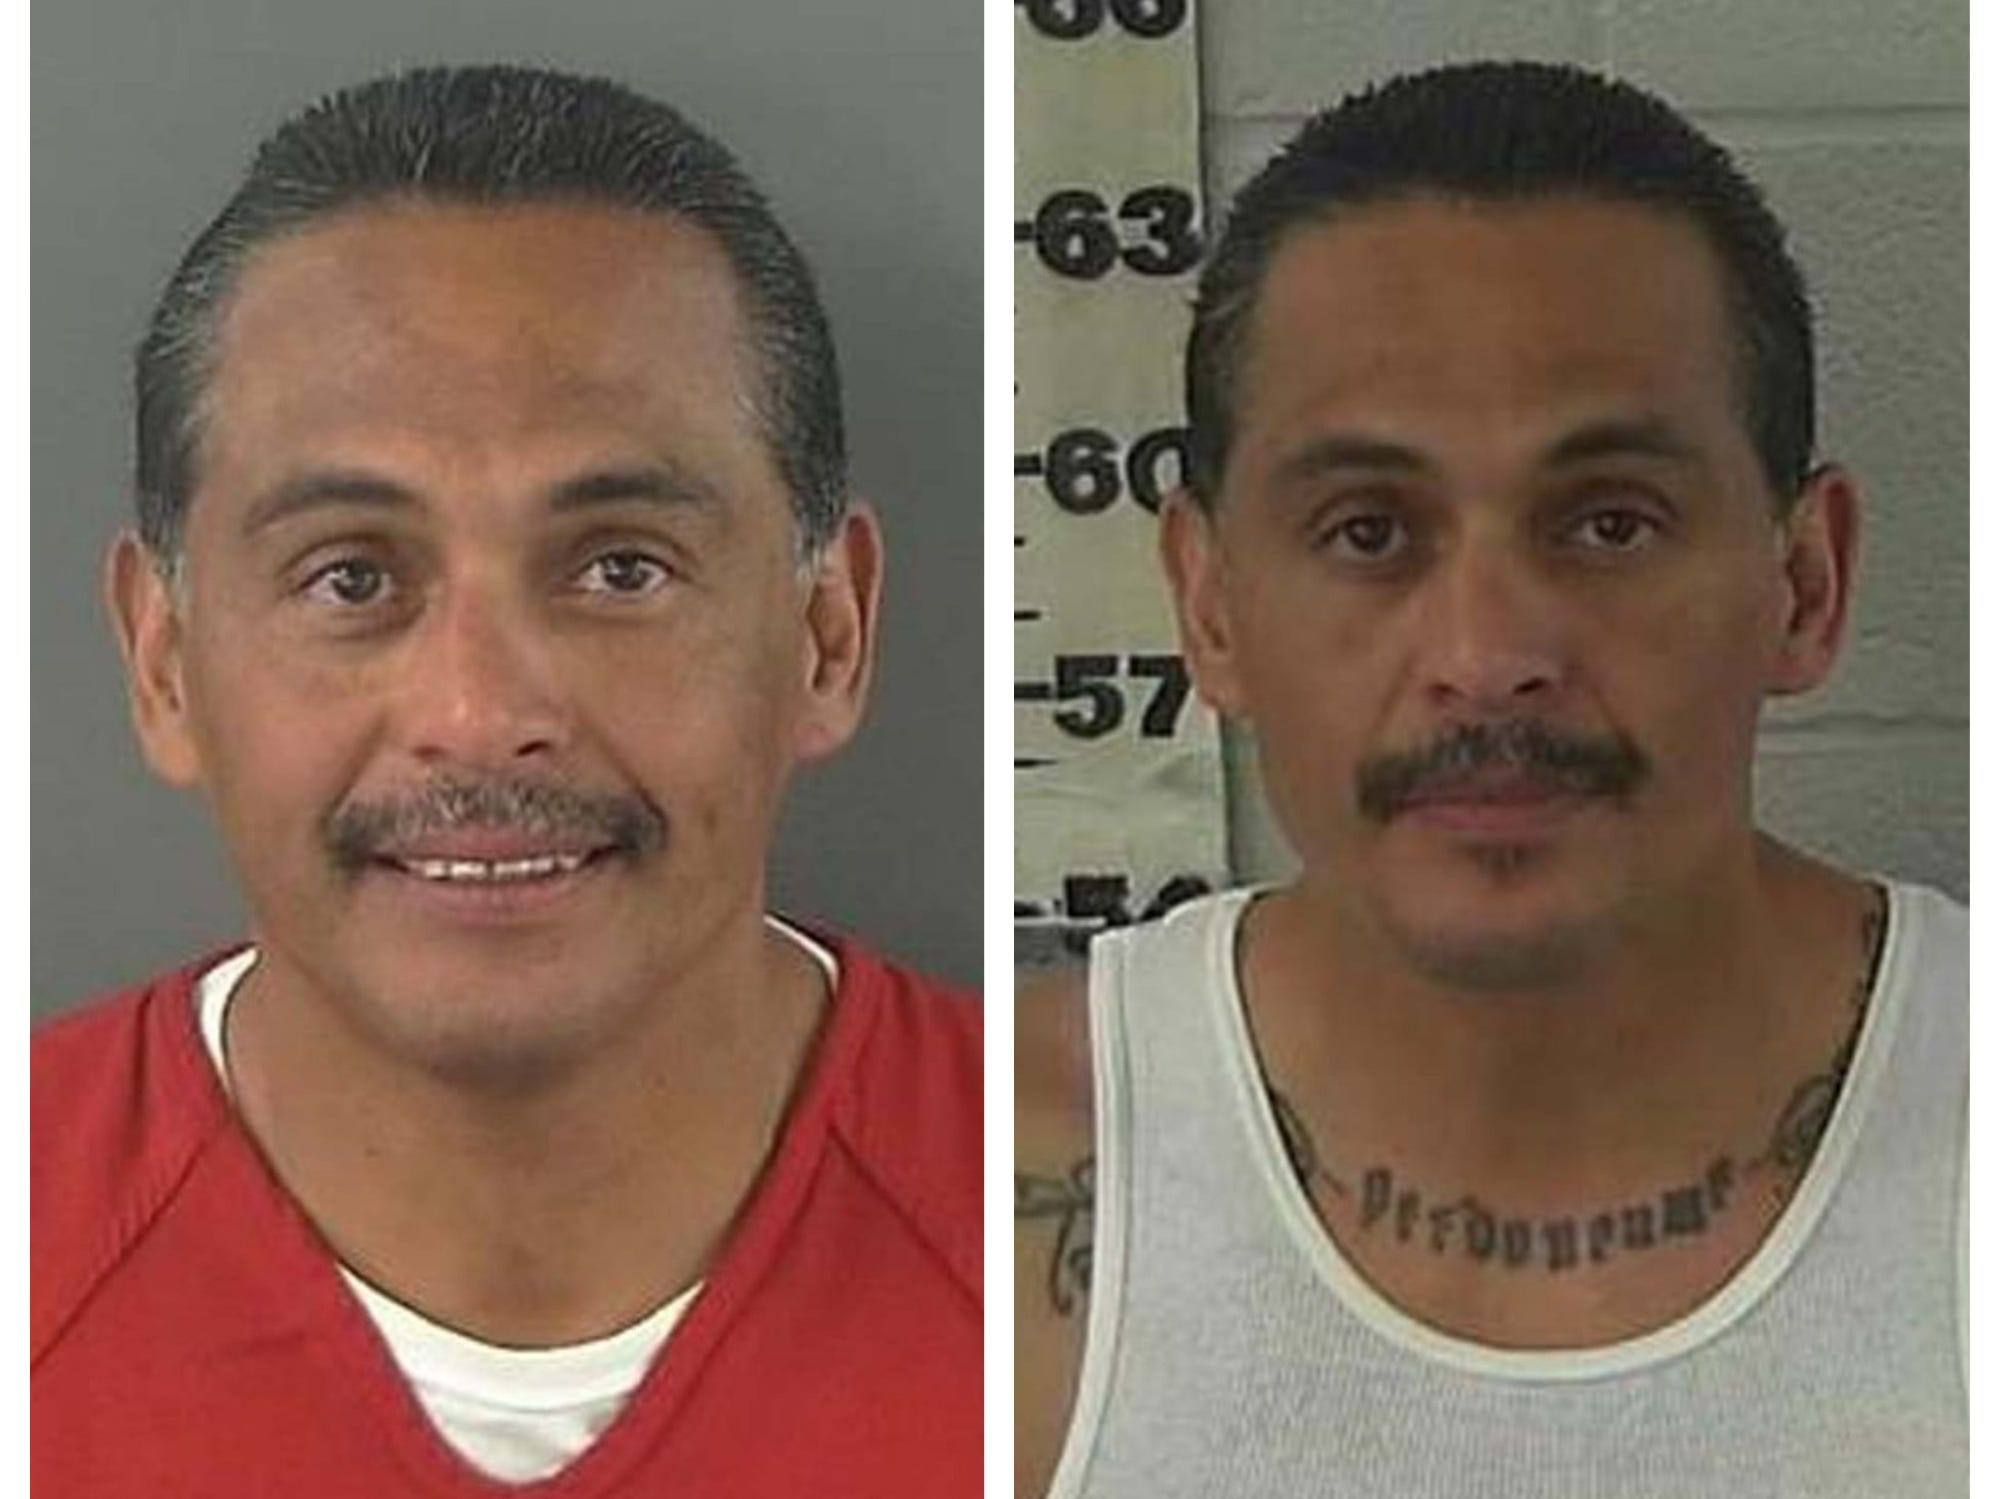 "Jesus Moreno Morones Jr., 49, is wanted by the Nevada Department of Public Safety's Investigation Division for trafficking, selling or transporting methamphetamine. He is 5 feet 7 inches tall and weighs 155 pounds. He has multiple tattoos including the name ""Morones"" on his neck and ""Laura Mi Madresita Q"" on his chest. He also has the word ""pride"" on his arm, among other tattoos. He was described as having violent tendencies and is known to abuse drugs and alcohol. He also has ties in California and Utah."